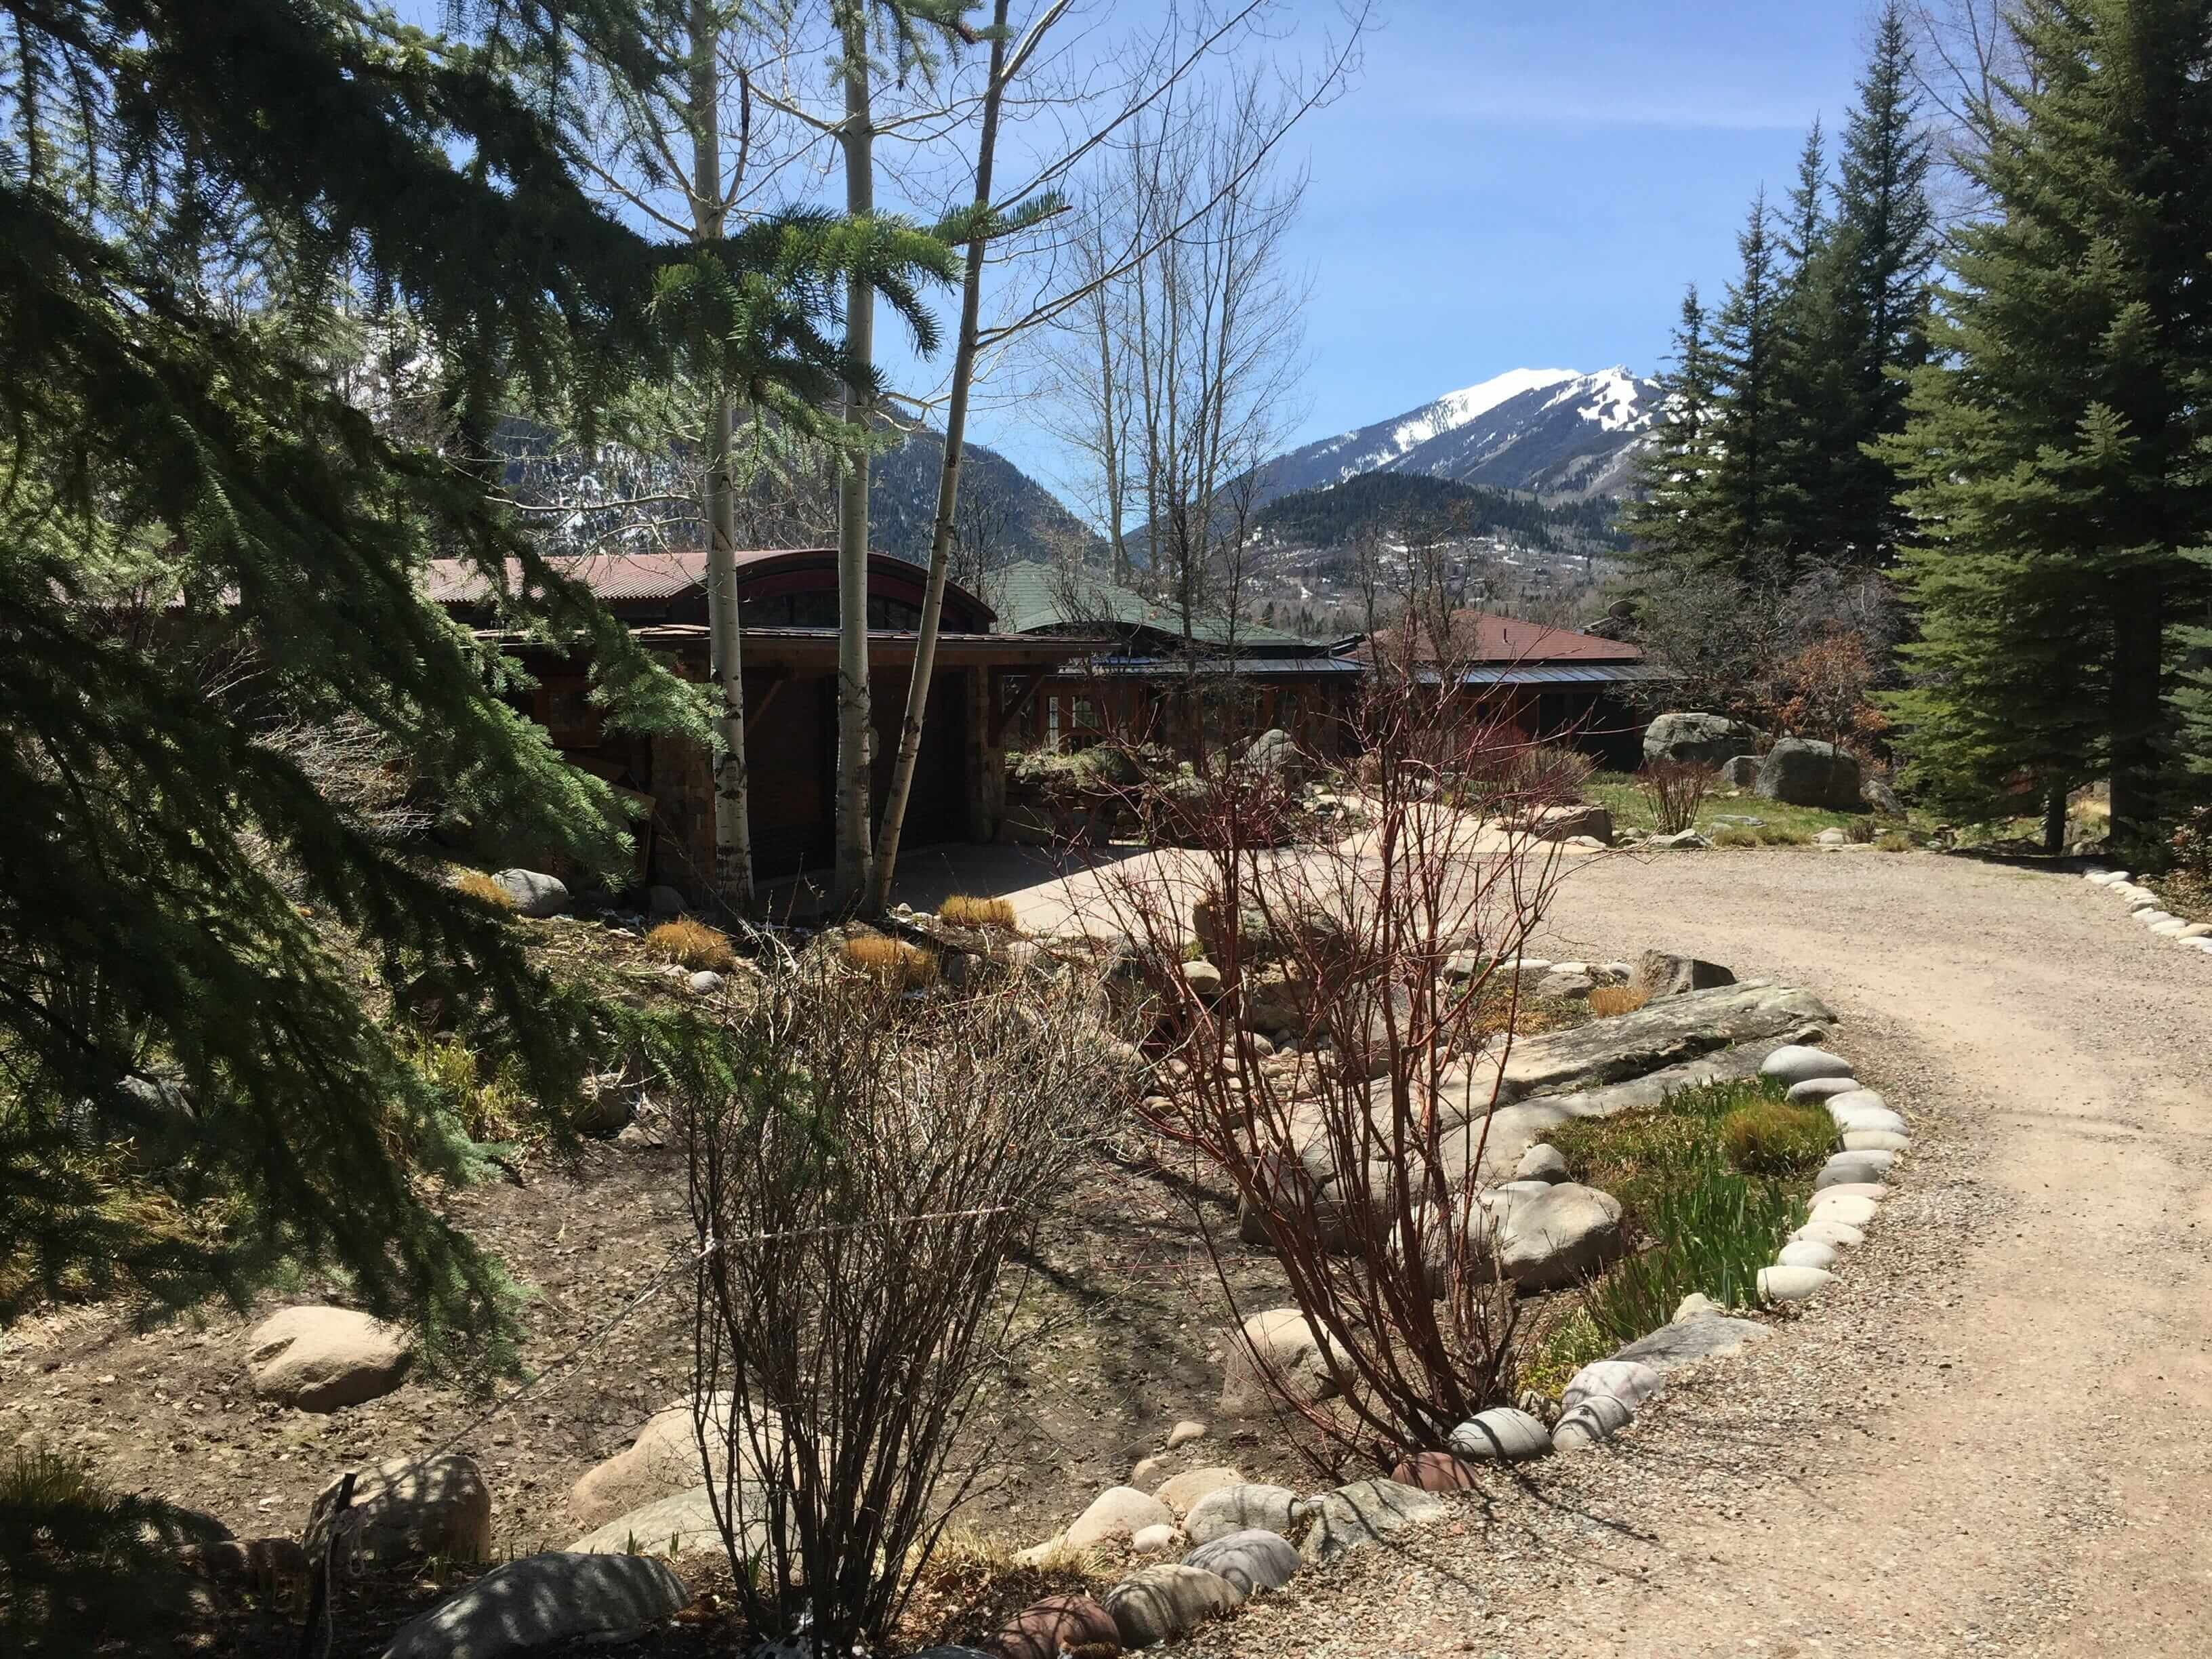 Record 1 Acre Lot Sale – 848 Willoughby Way with 1990 Home Closes at $12.1M Image